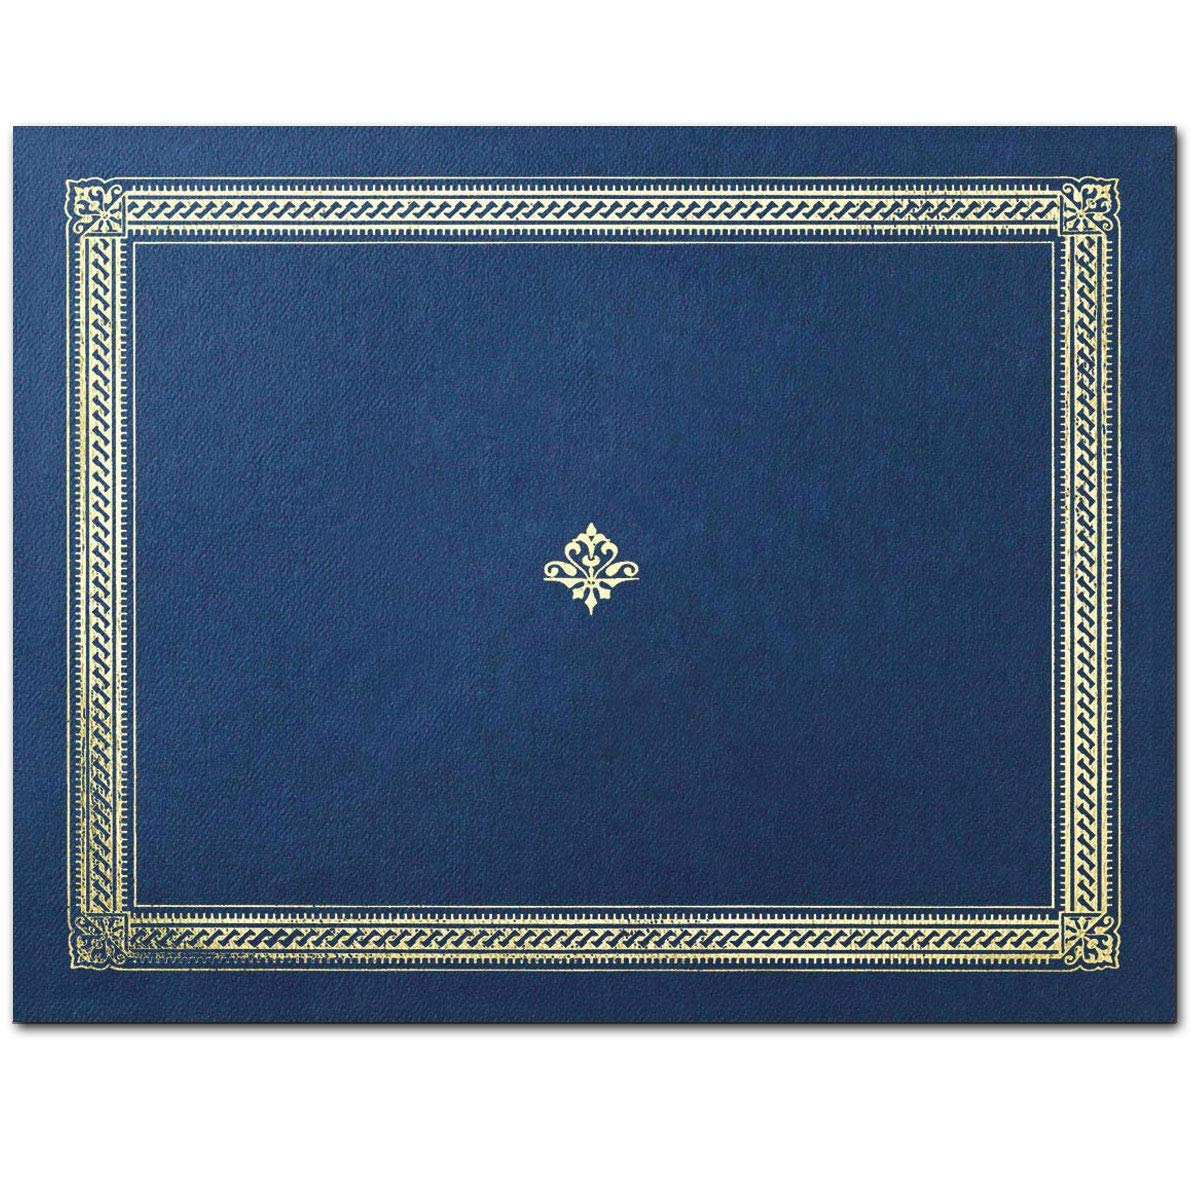 Sleek Swirls Premier Fold Certificate Jackets, 9 1/2 x 12, Blue with Gold Foil, Count of 50 by PaperDirect